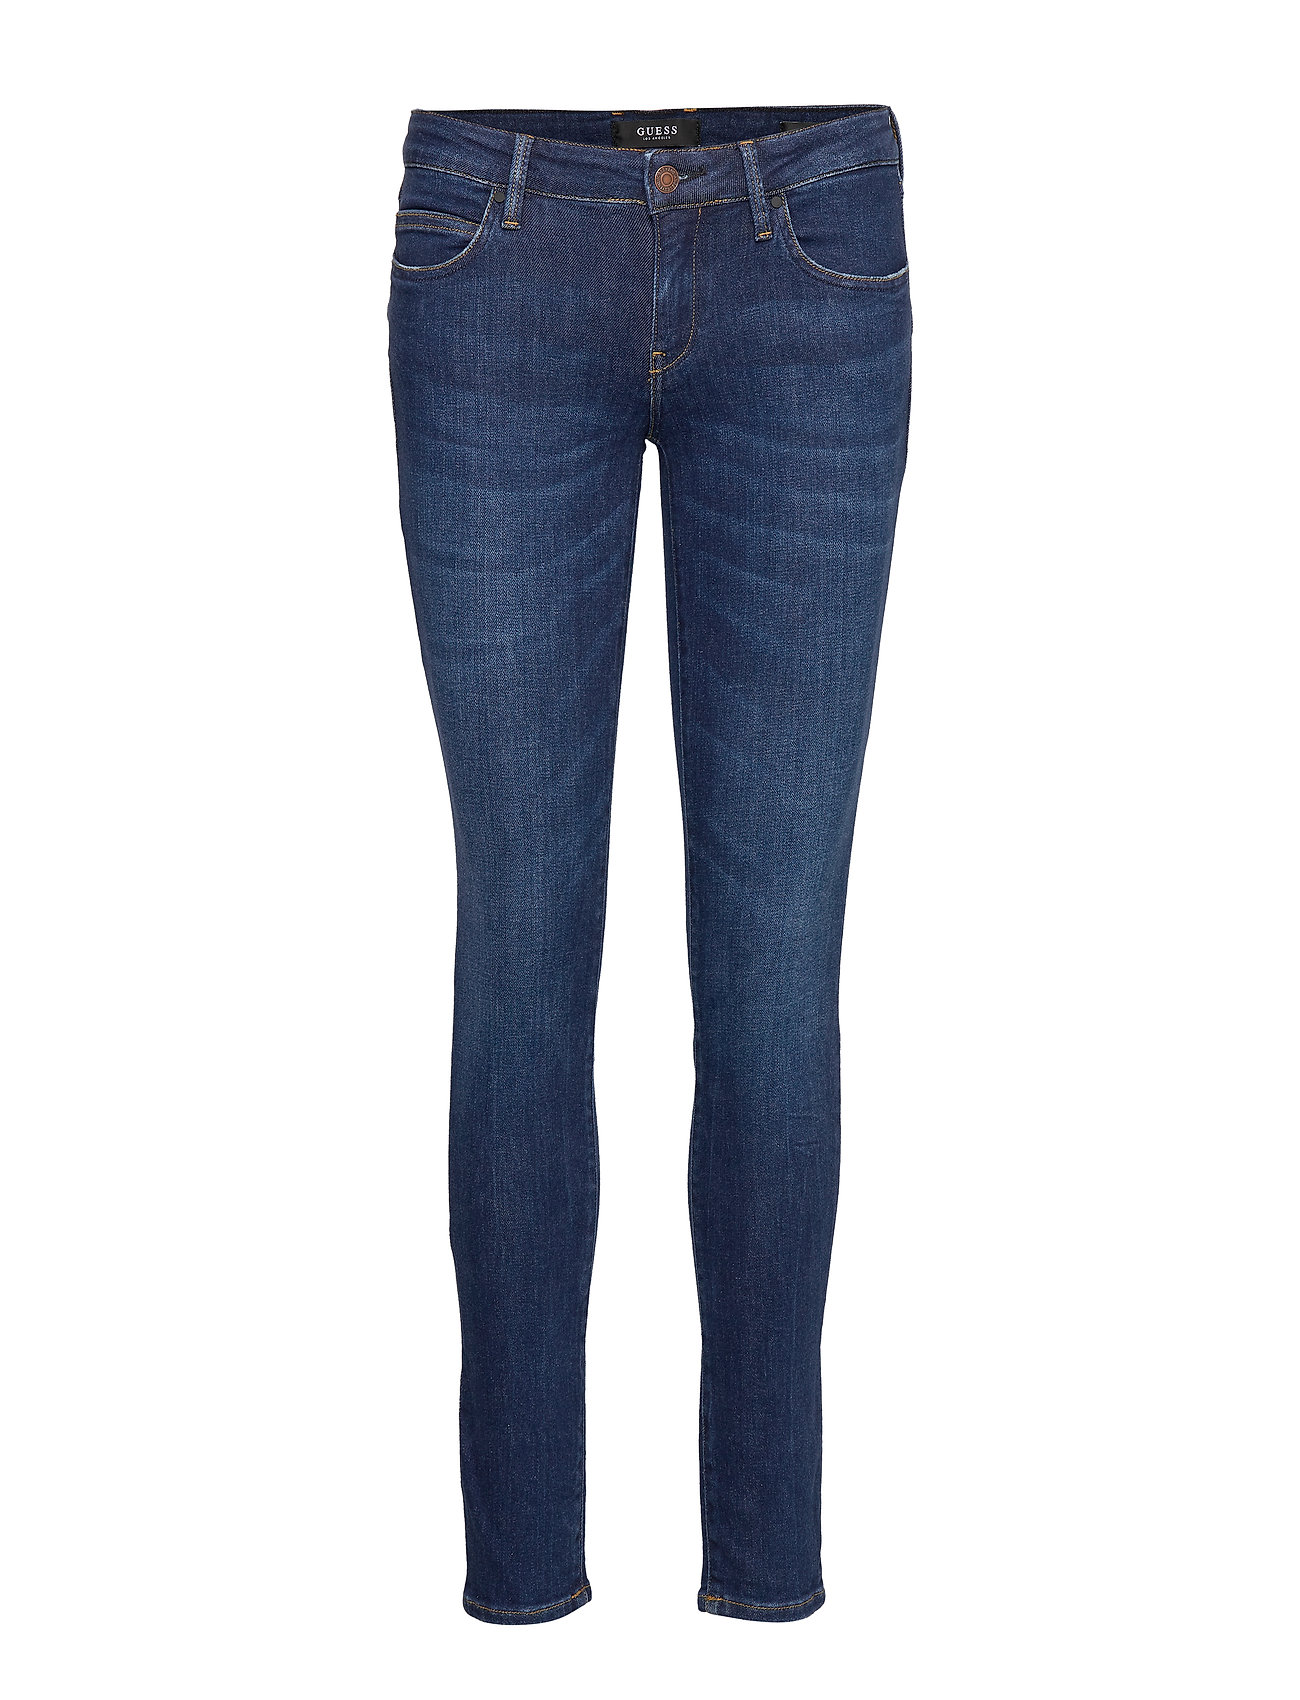 GUESS Jeans MARILYN - STRAIGHT WASH